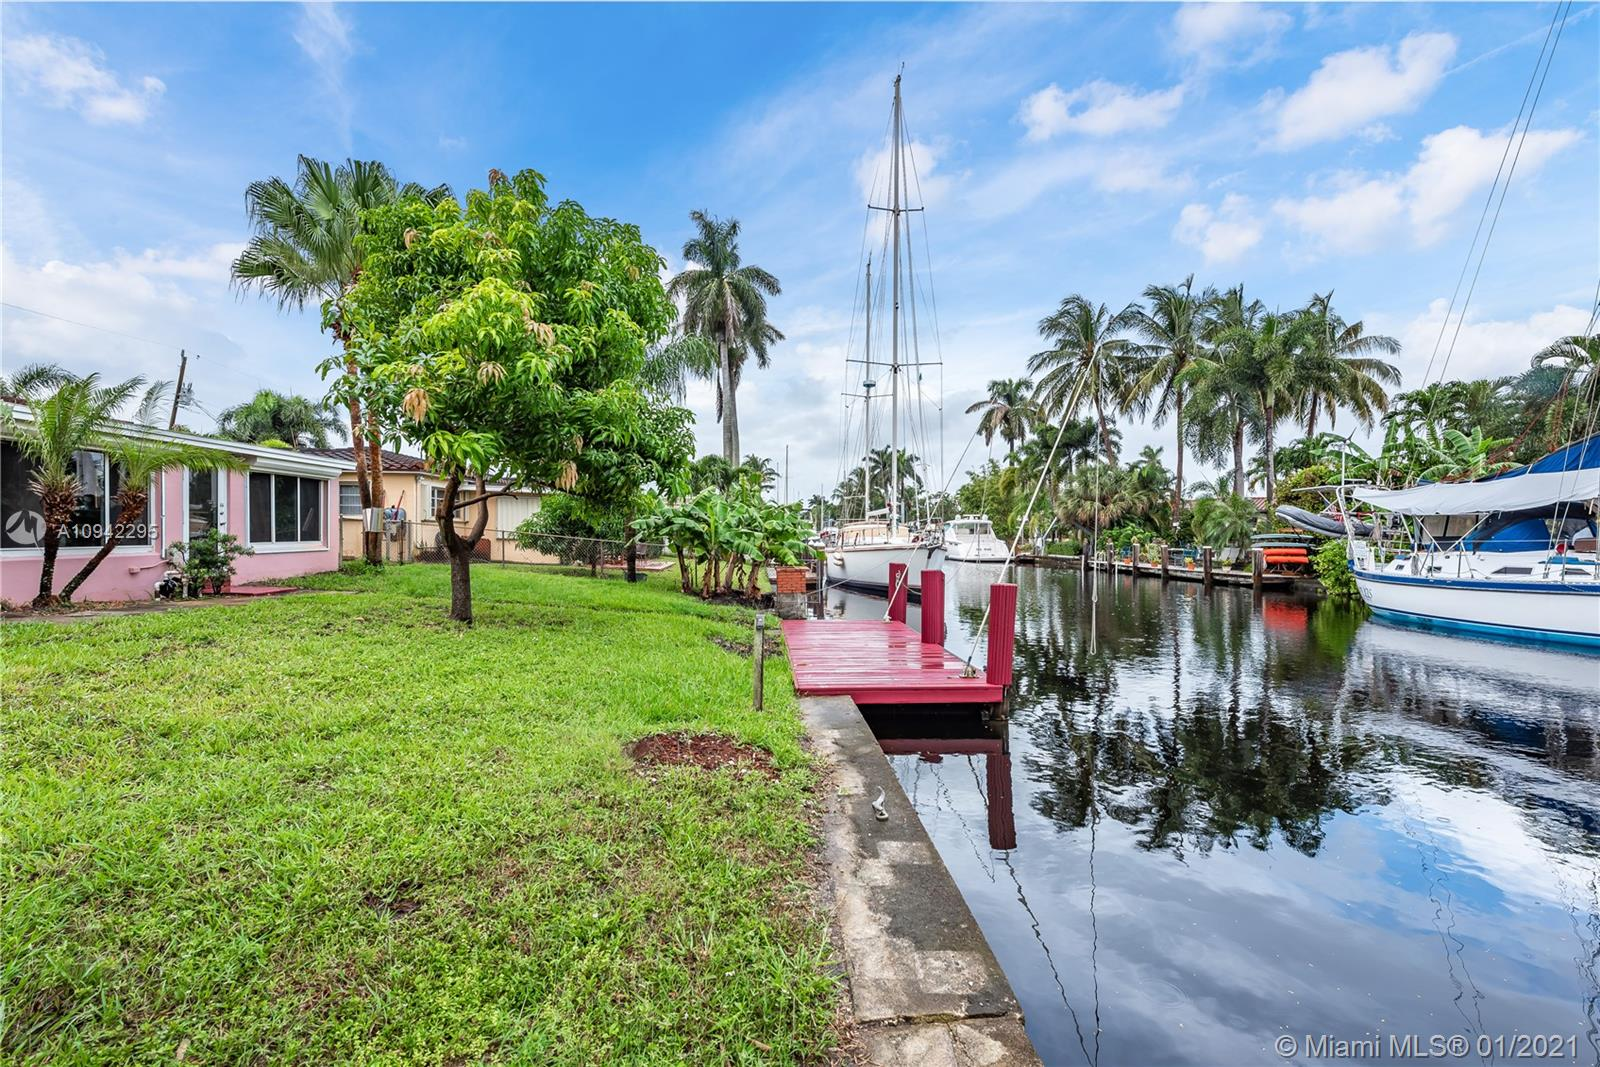 Beautifully waterfront home in Fort Lauderdale with Ocean Access & No Fixed Bridges. This single family home features Hurricane Impact Windows & Doors, open layout with tile flooring in the main living area & new wood flooring the bedrooms. Kitchen with newer SS appliances. Walk out to your spacious & fenced-in backyard with a paved overhang overlooking the dock & water. The front of house features a large front yard, long driveway and a car port with direct access to the kitchen. This beautiful home is sitting in a great location whether your traveling by boat or car! A Must See! Easy To Show Just Schedule Your Appointment Today!